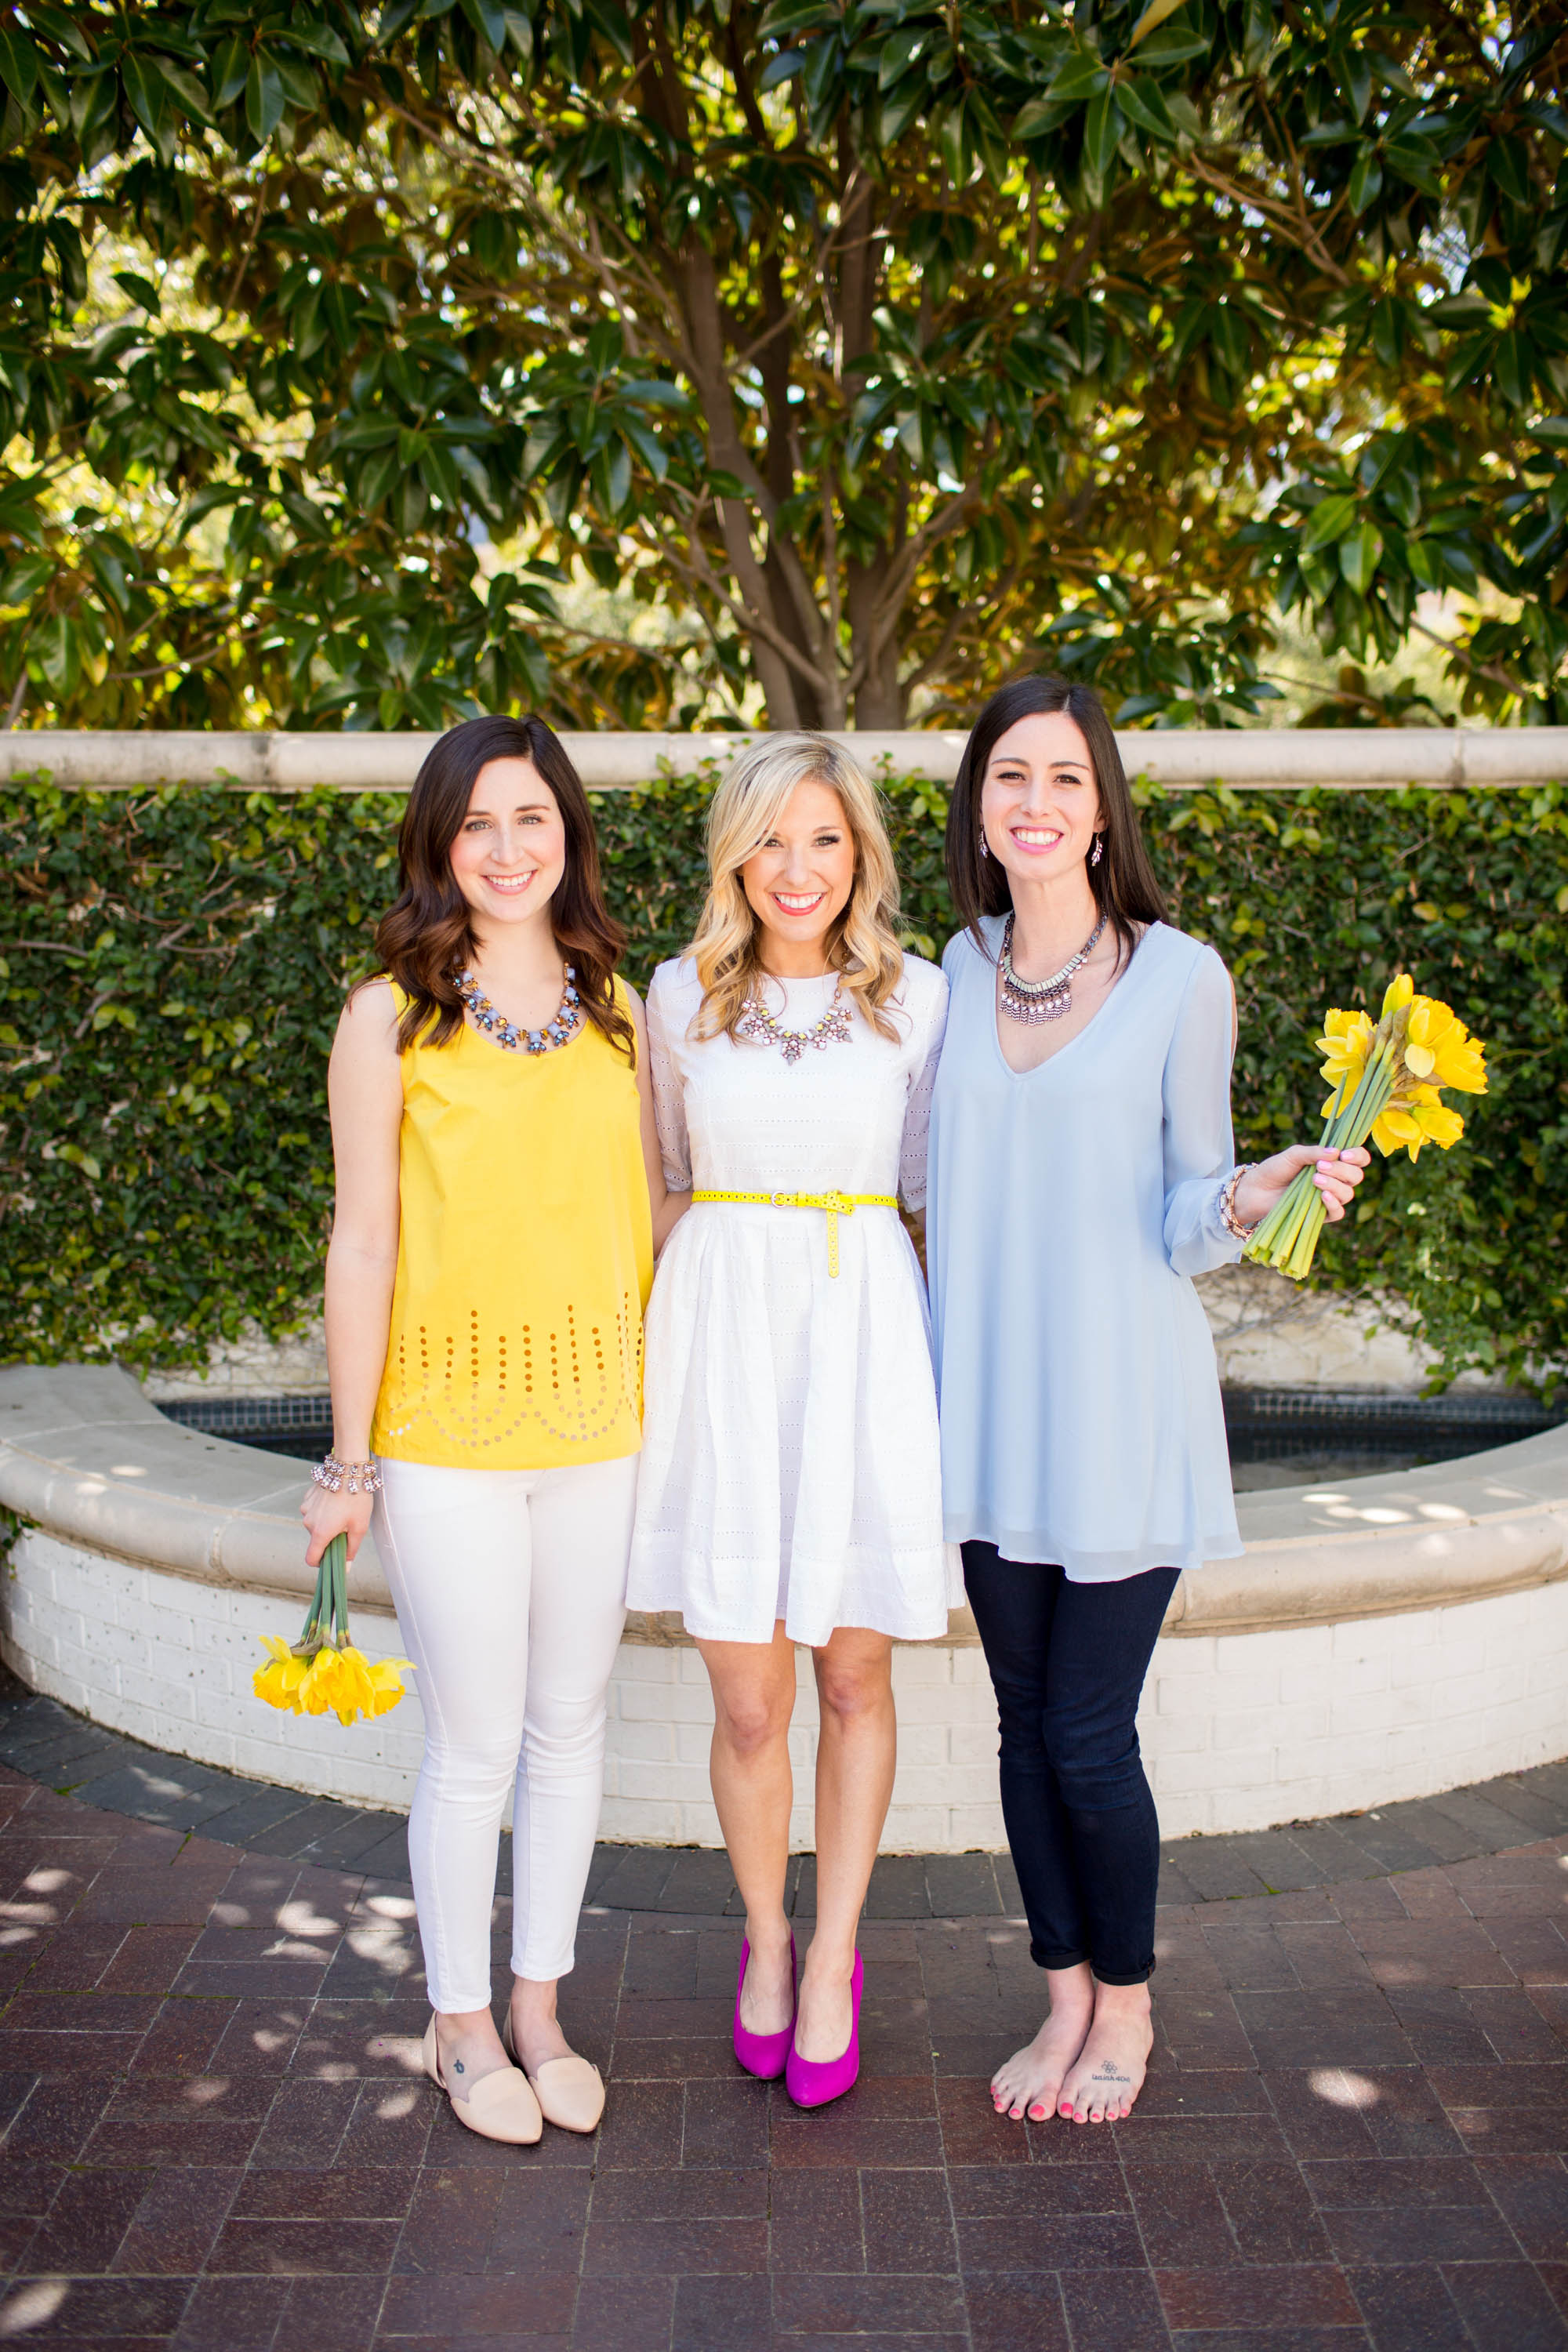 A big thank you to our beautiful models Shelby & Laura and to Kristen Dee for the Photography!!!!